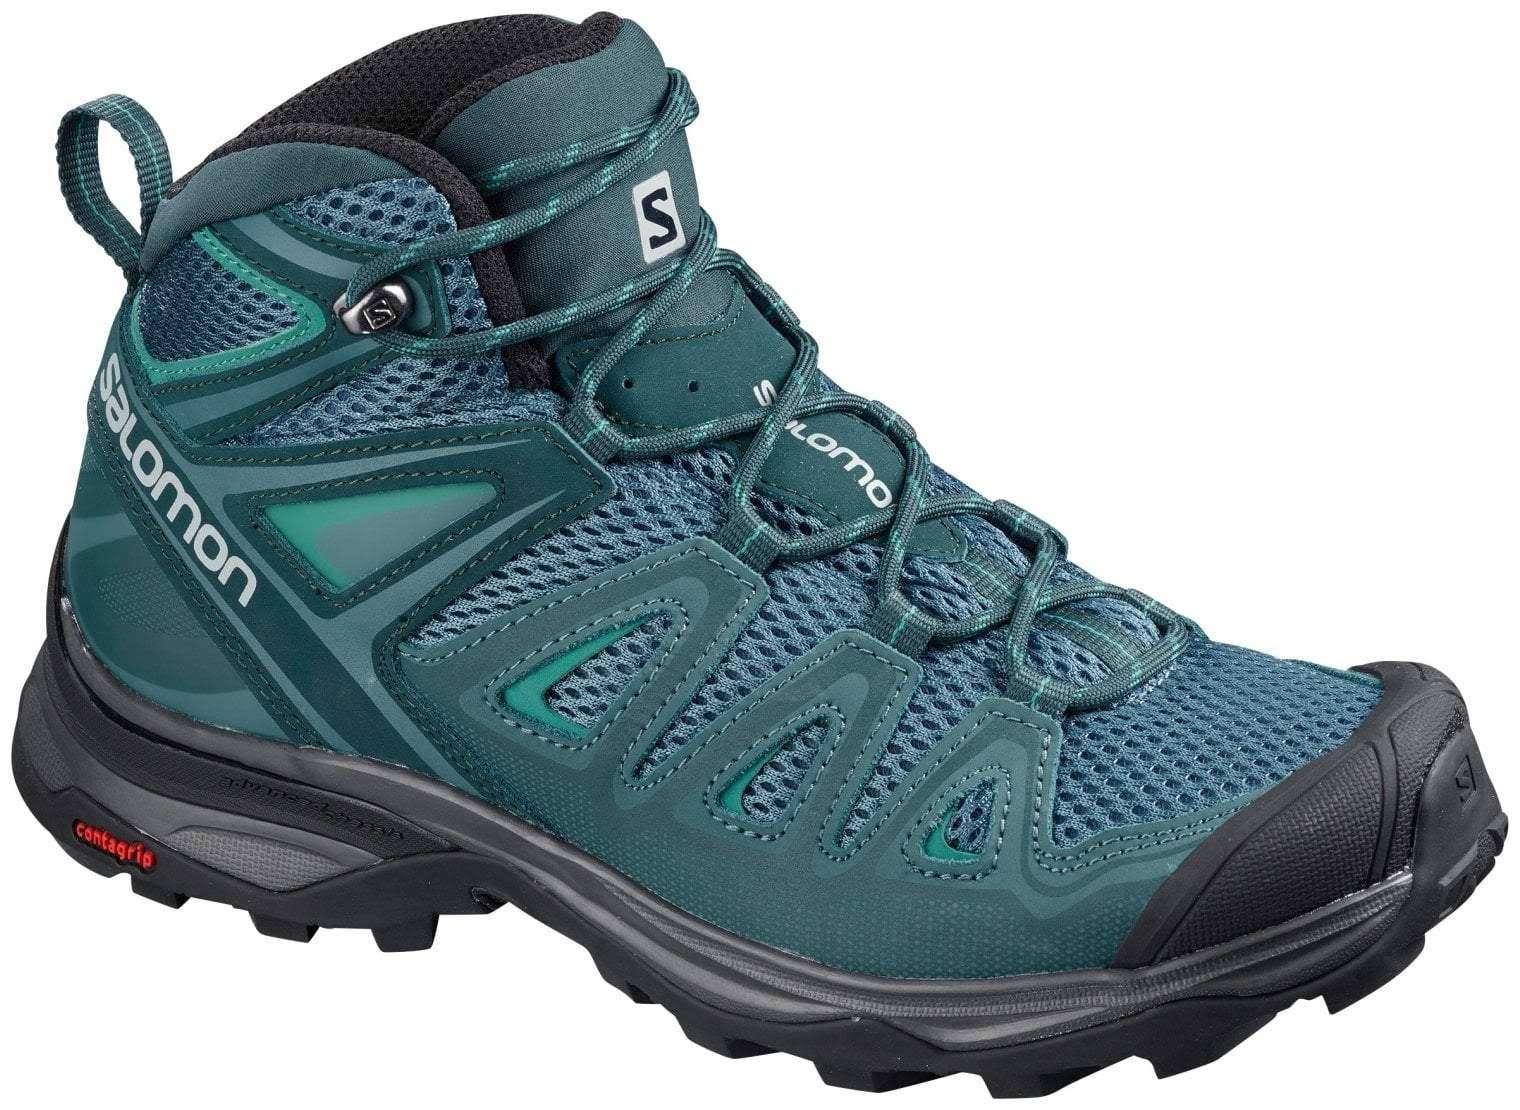 Salomon X Ultra Mid 3 Aero Hiking Boot - Mallard Blue, 8 US